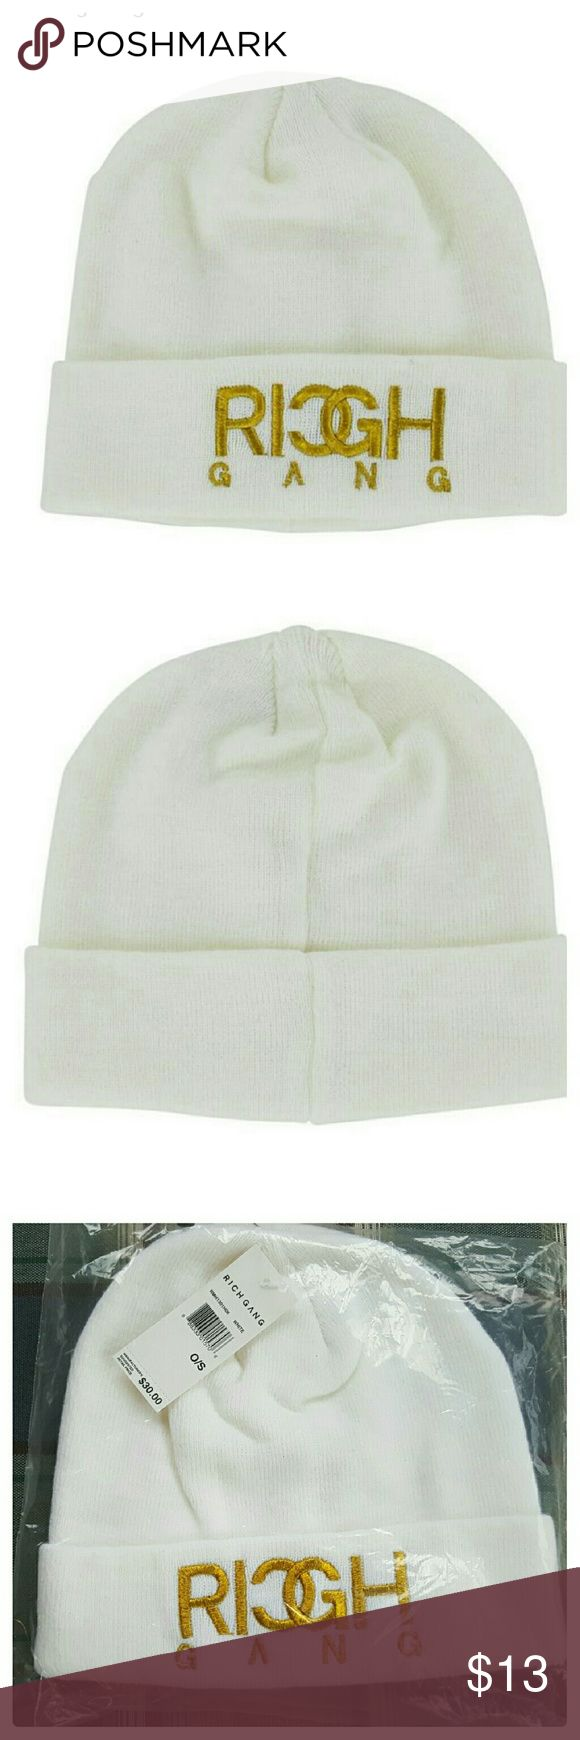 ⤵REDUCED⤵  **MENS** Rich Gang knit beanie NWT White Mens knit Beanie  Brand: Rich Gang. Brand new with tags in package. Size. One size. Rich Gang Accessories Hats